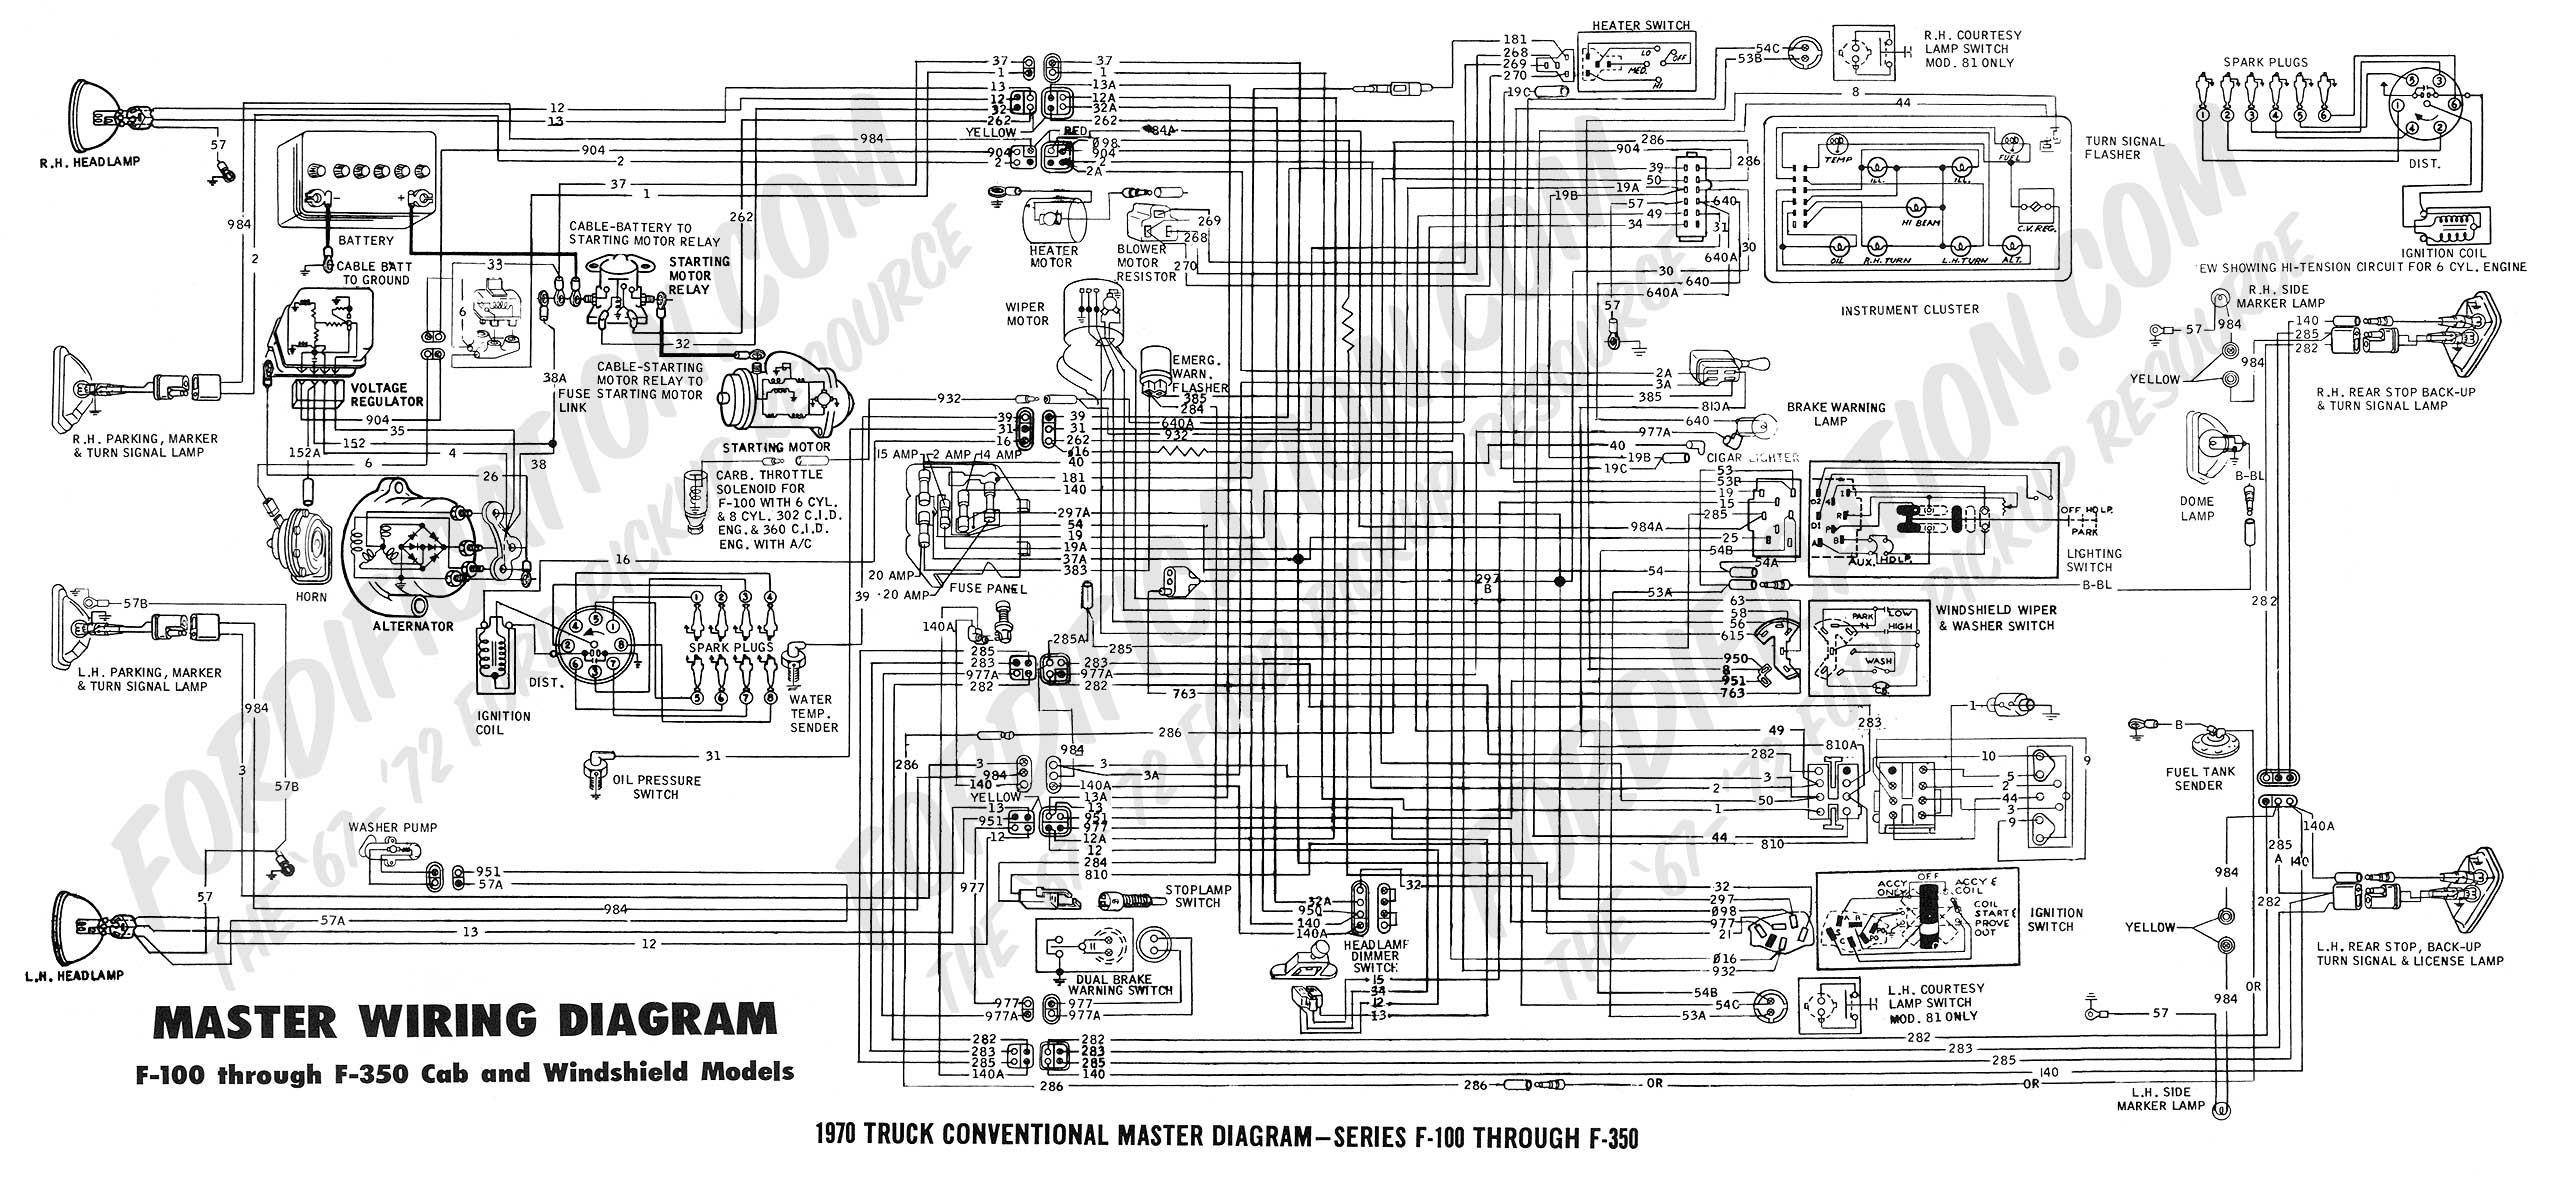 f250 dash wiring diagram f250 automotive wiring diagrams 1970 f 100 f250 master diagram